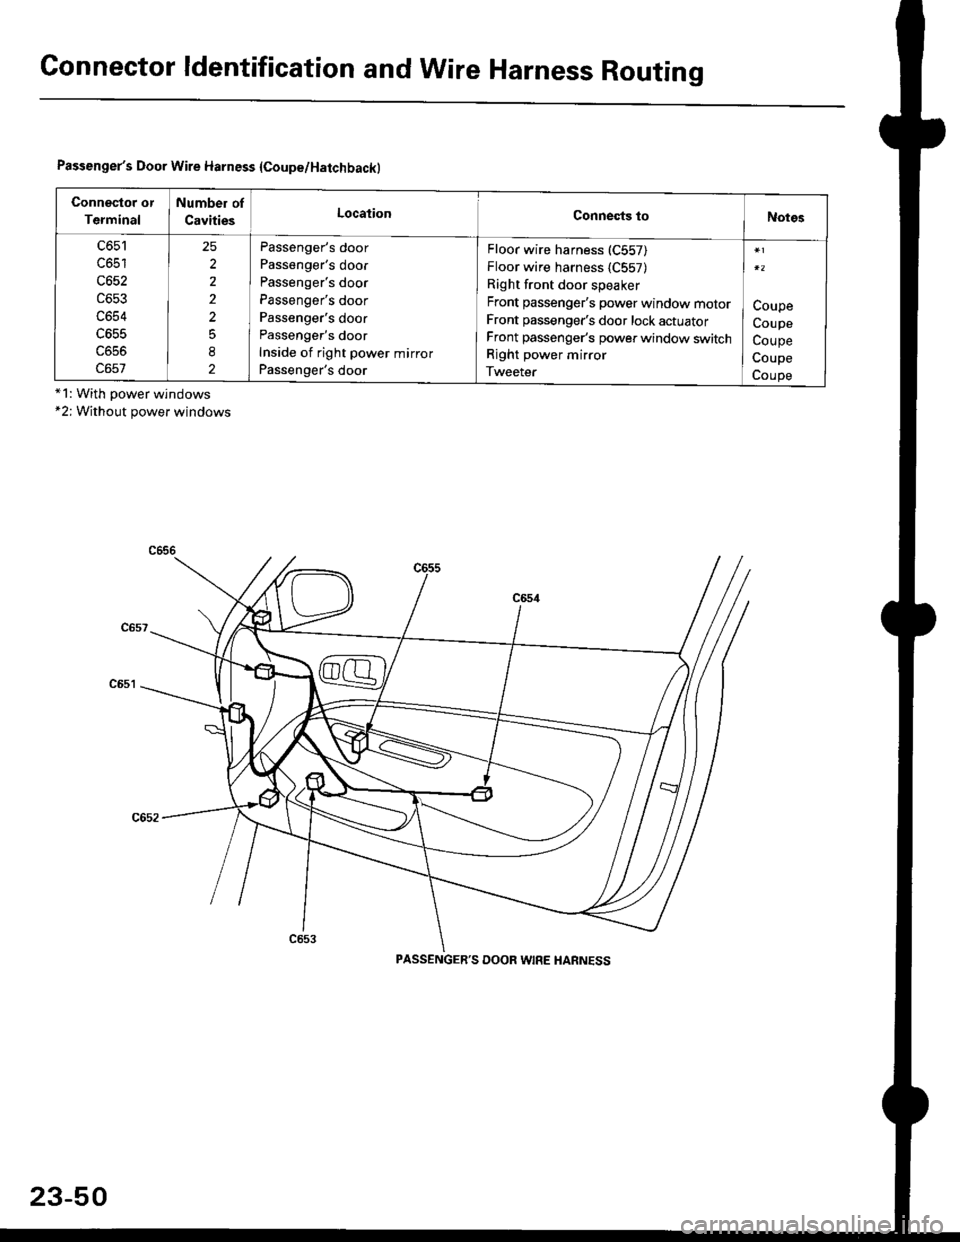 Honda Civic 1997 6g Workshop Manual 50 Wiring Harness Page 1520 Connector Ldentification And Wire Routing